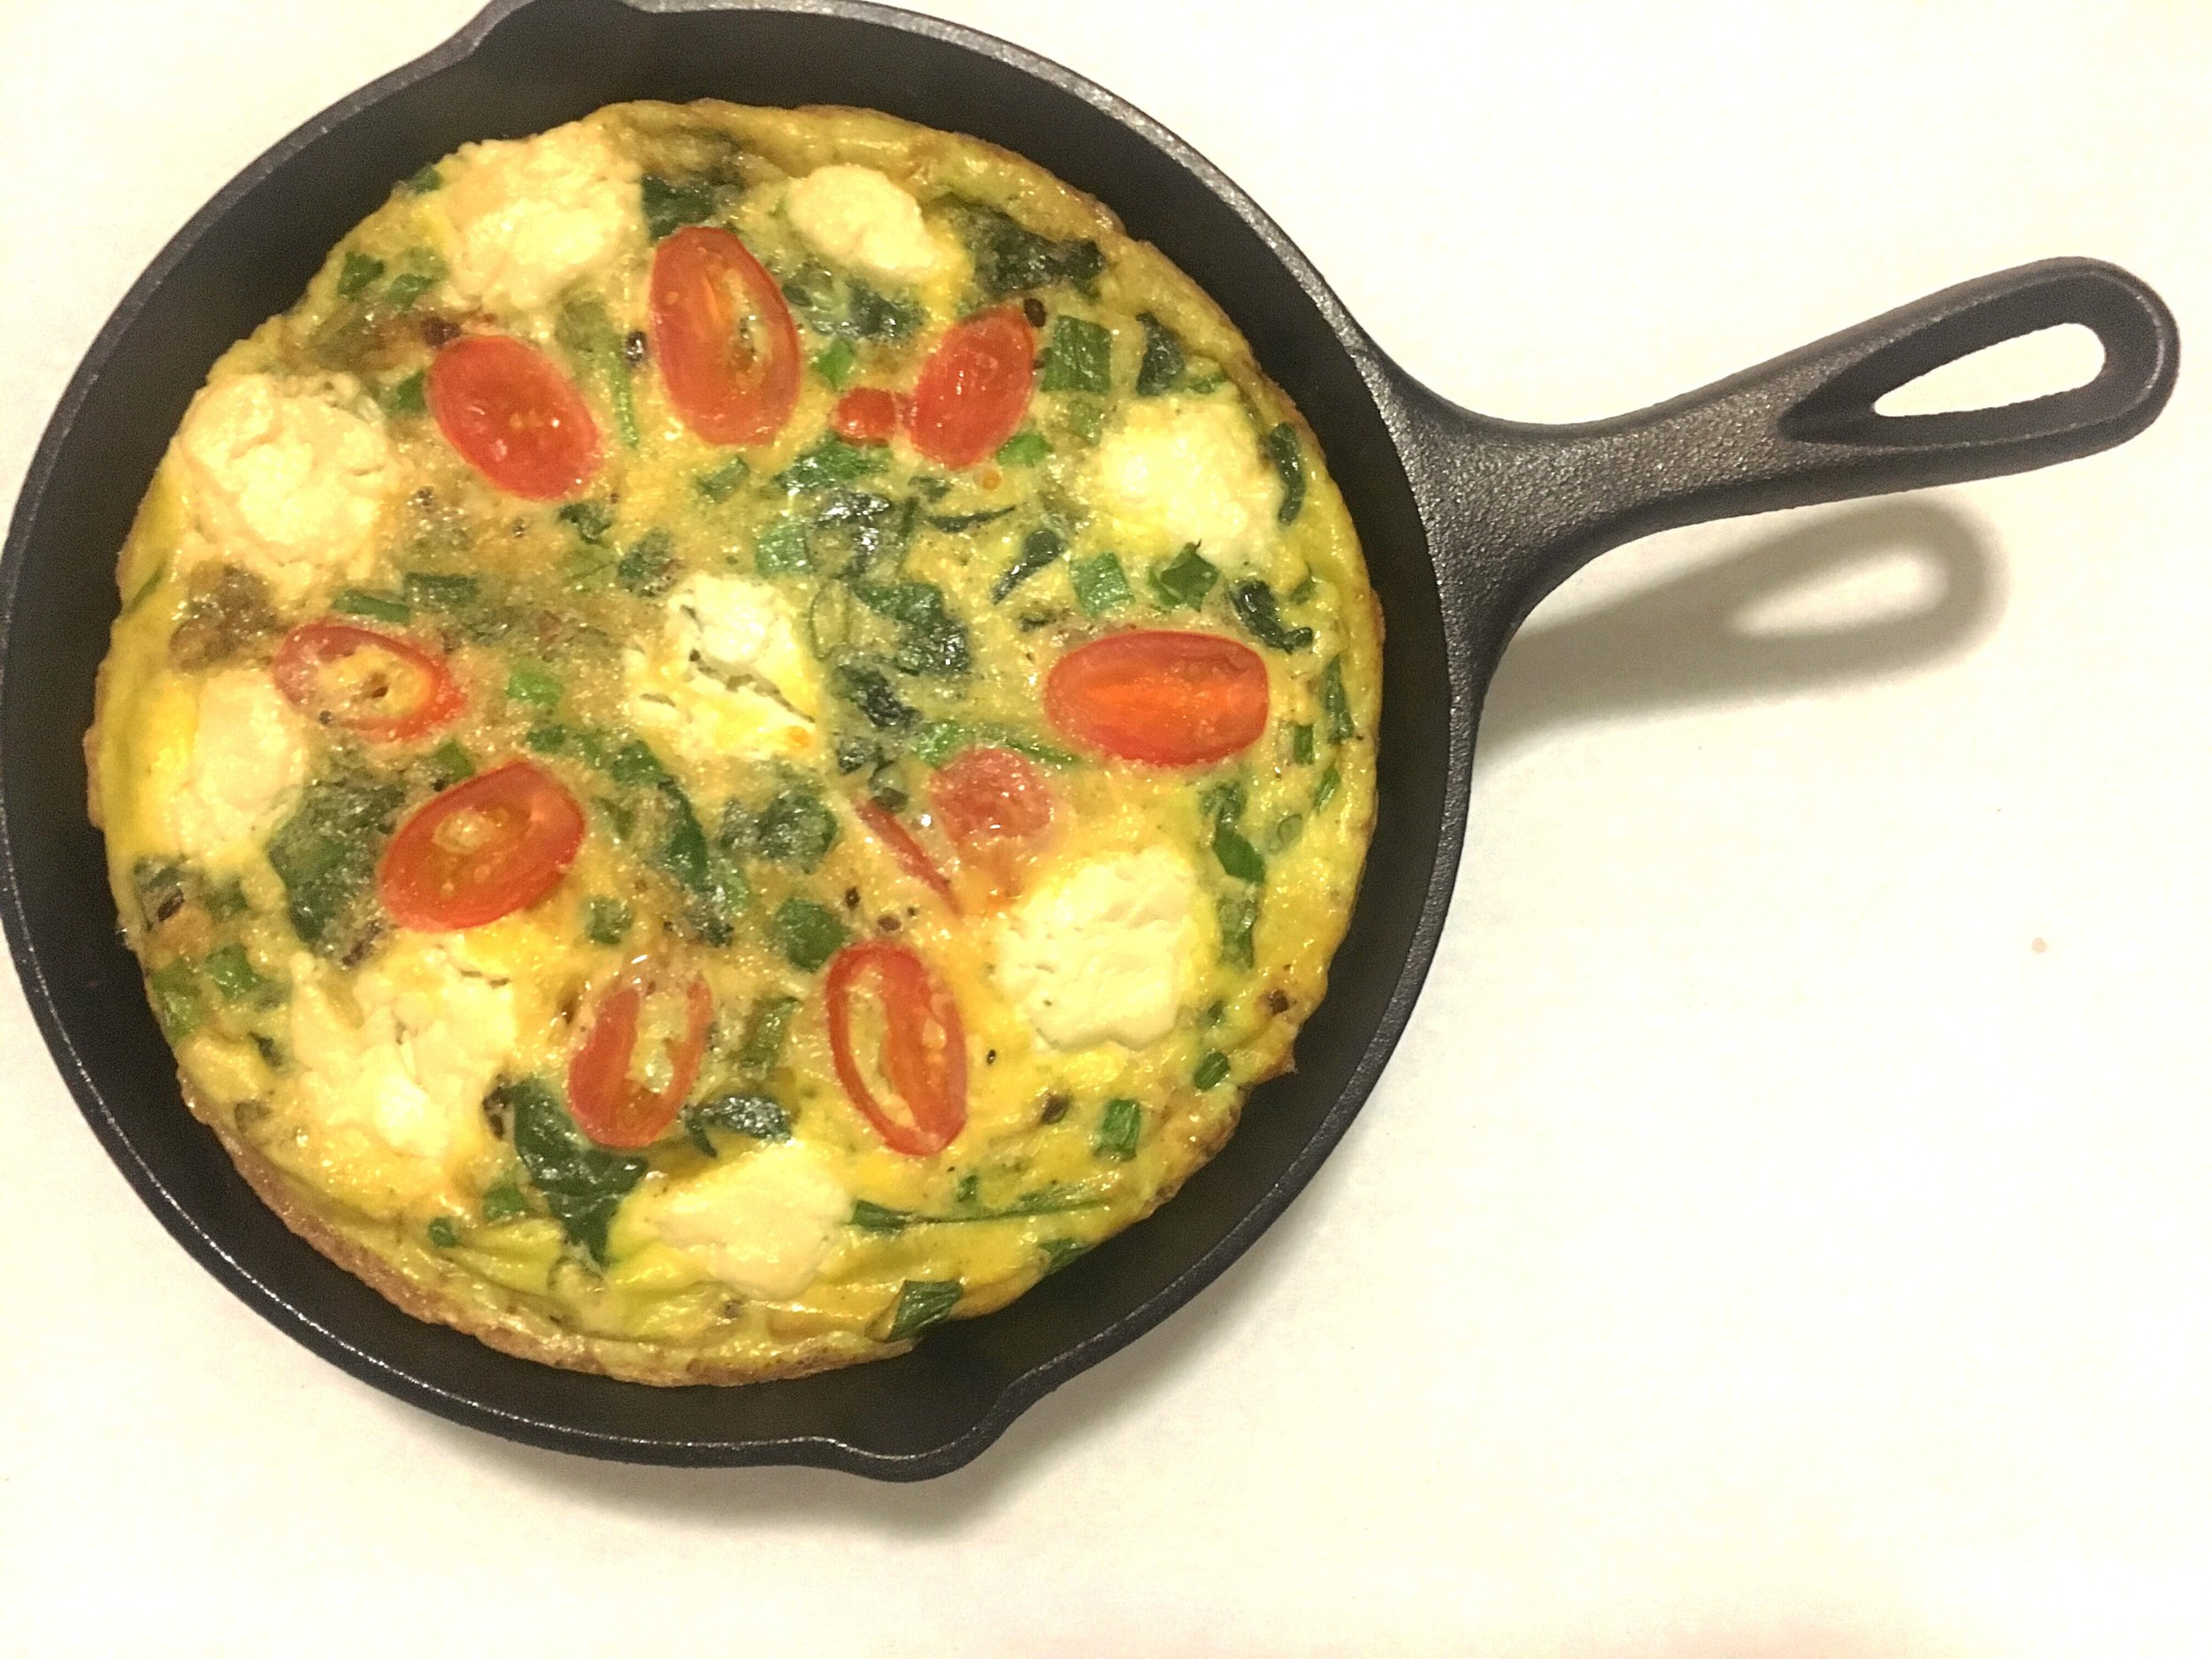 tomato, spinach and goat cheese frittata